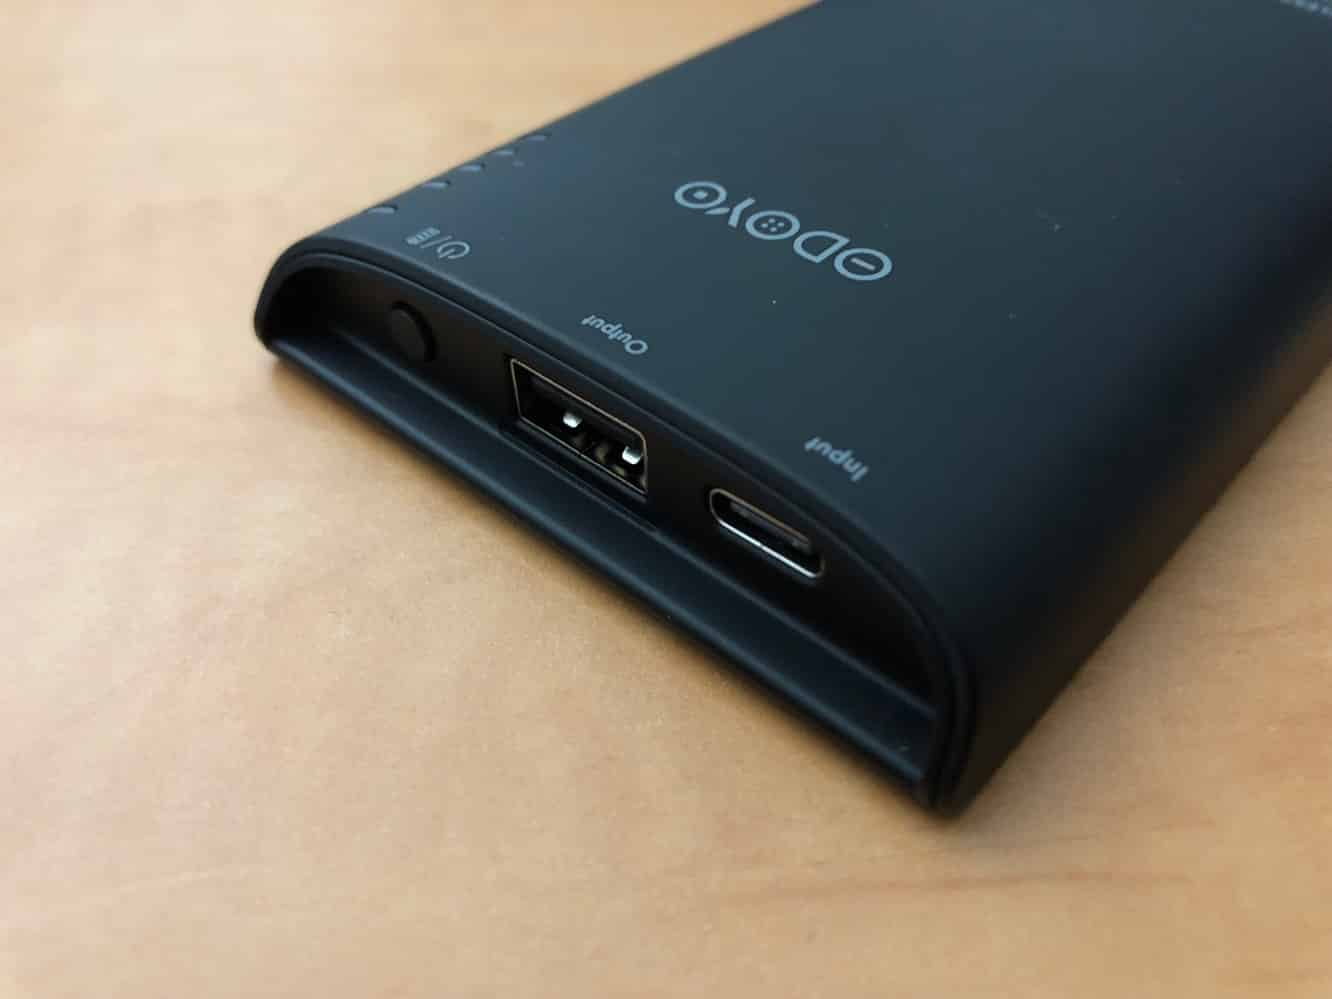 Review: Odoyo Wireless Charging Dock and Portable Battery Pack